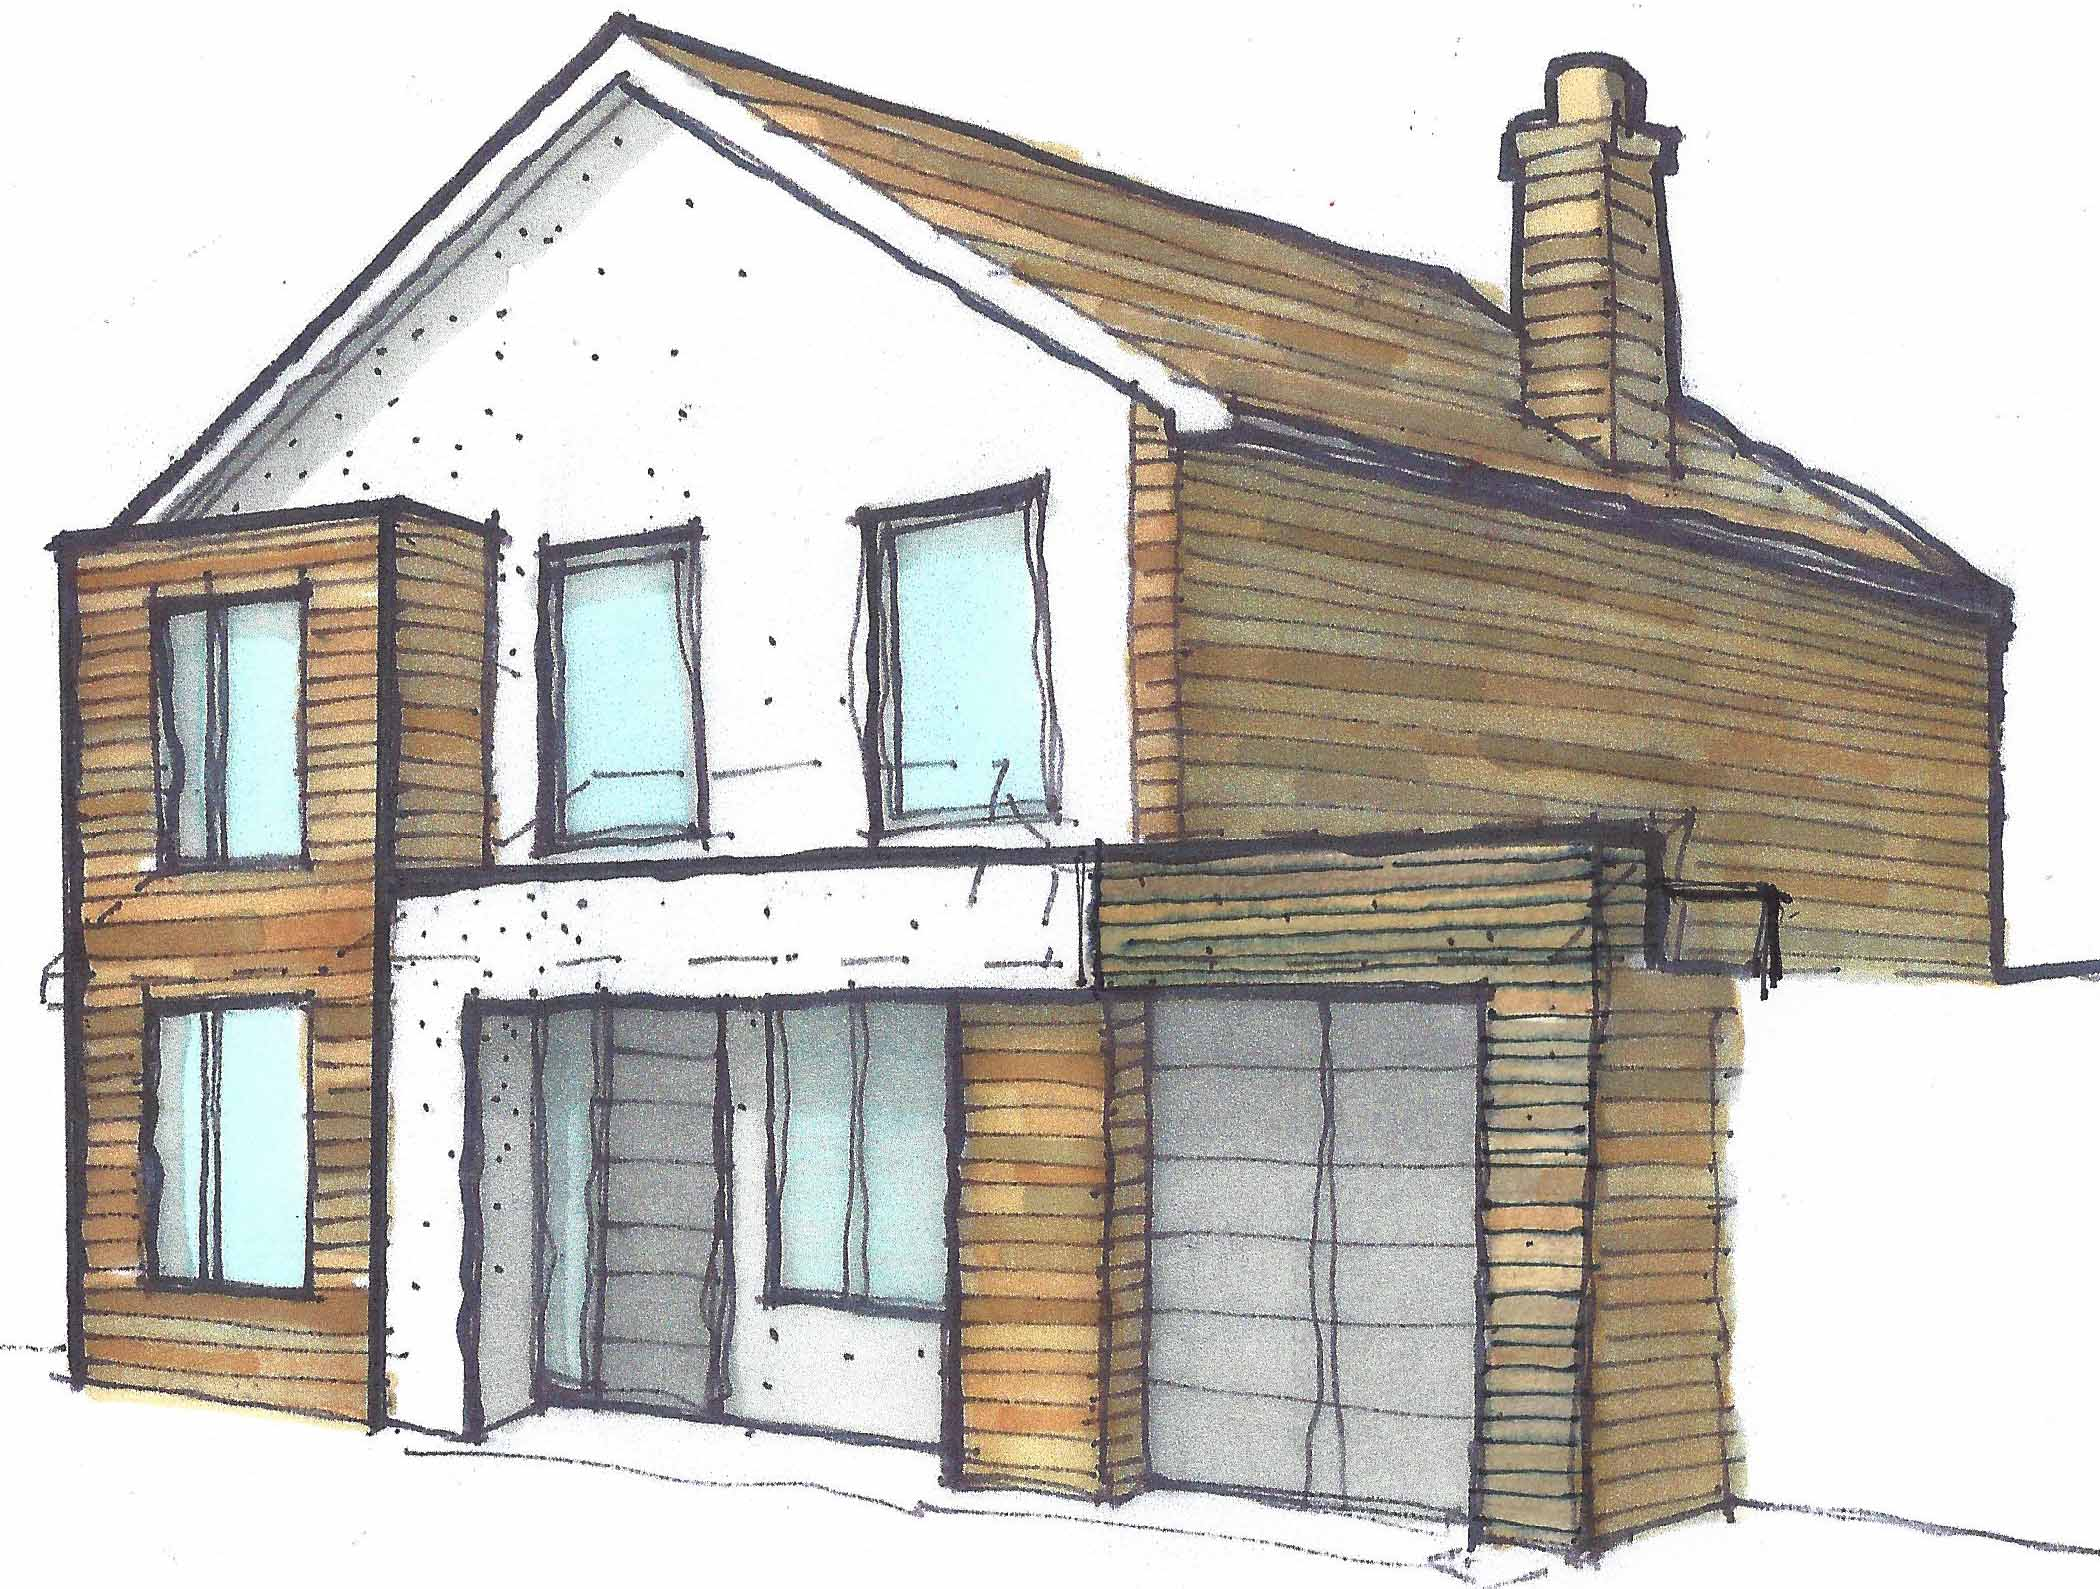 Marguerite Murdoch Architects - Based in Teddington, Richmond Upon Thames - Project Process - Detail Design Sketch